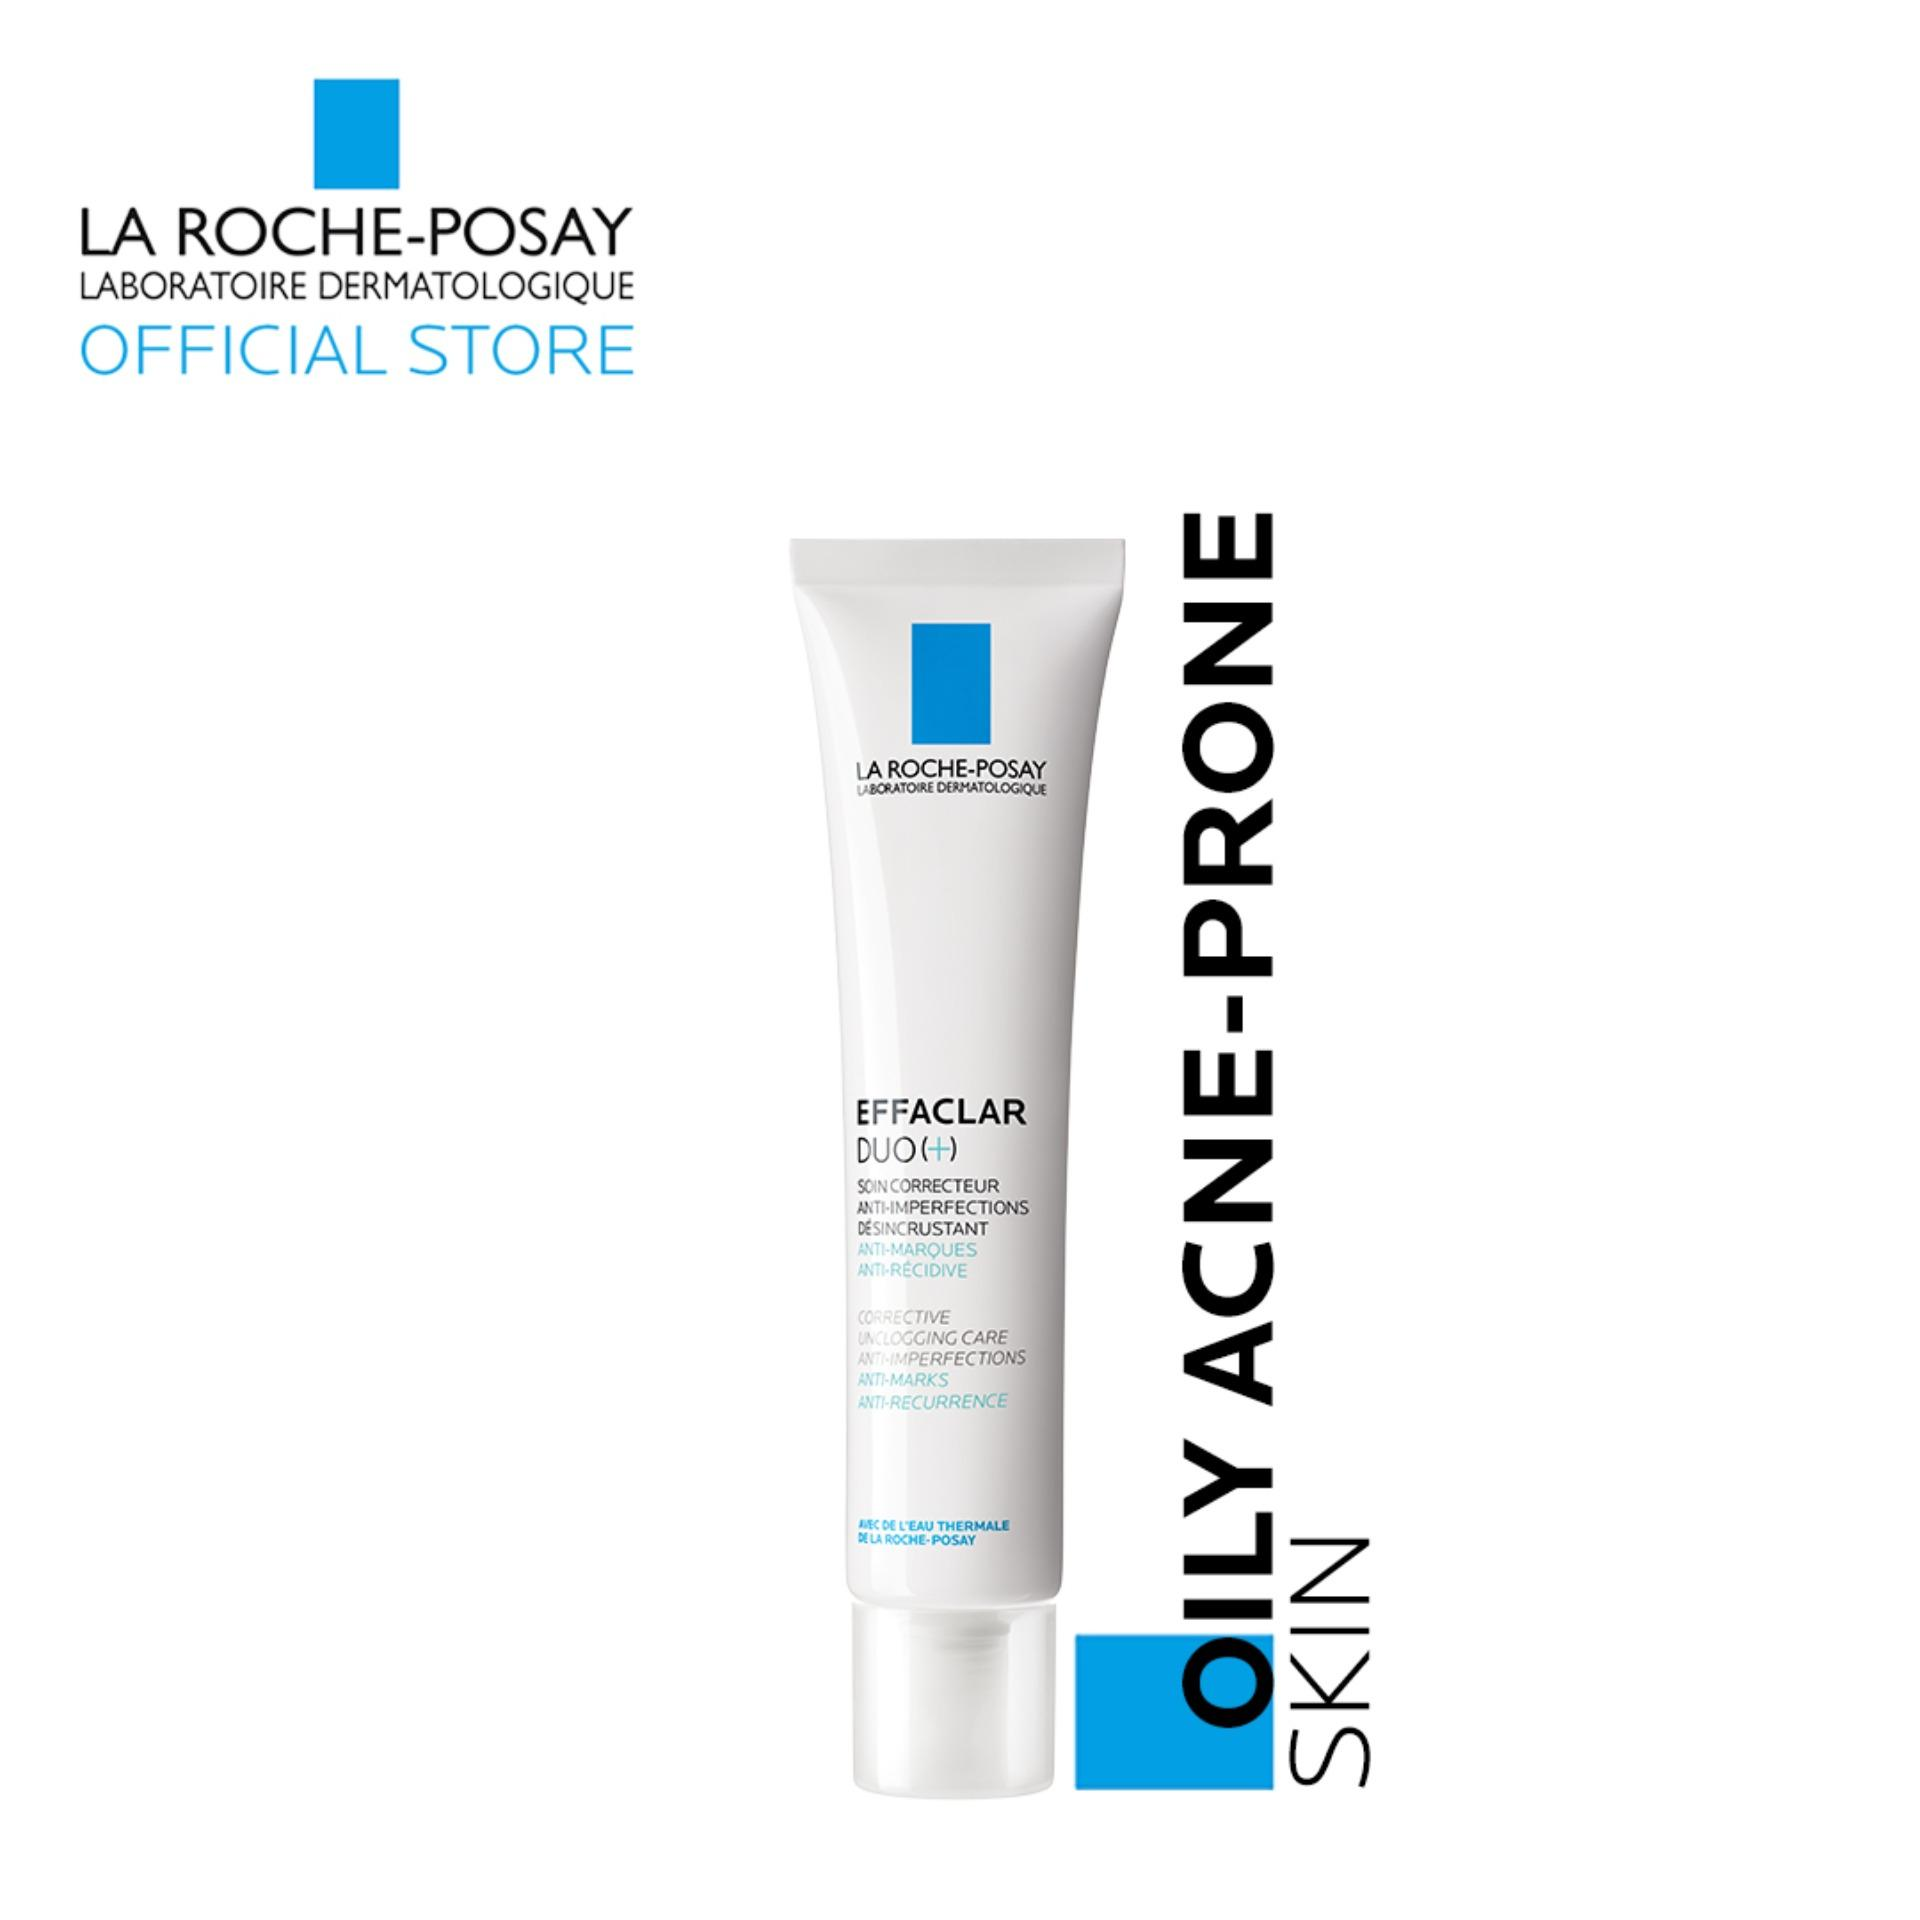 Effaclar Duo (+) [oily, Acne-Prone Skin] 40ml By La Roche-Posay By La Roche-Posay Official Store.